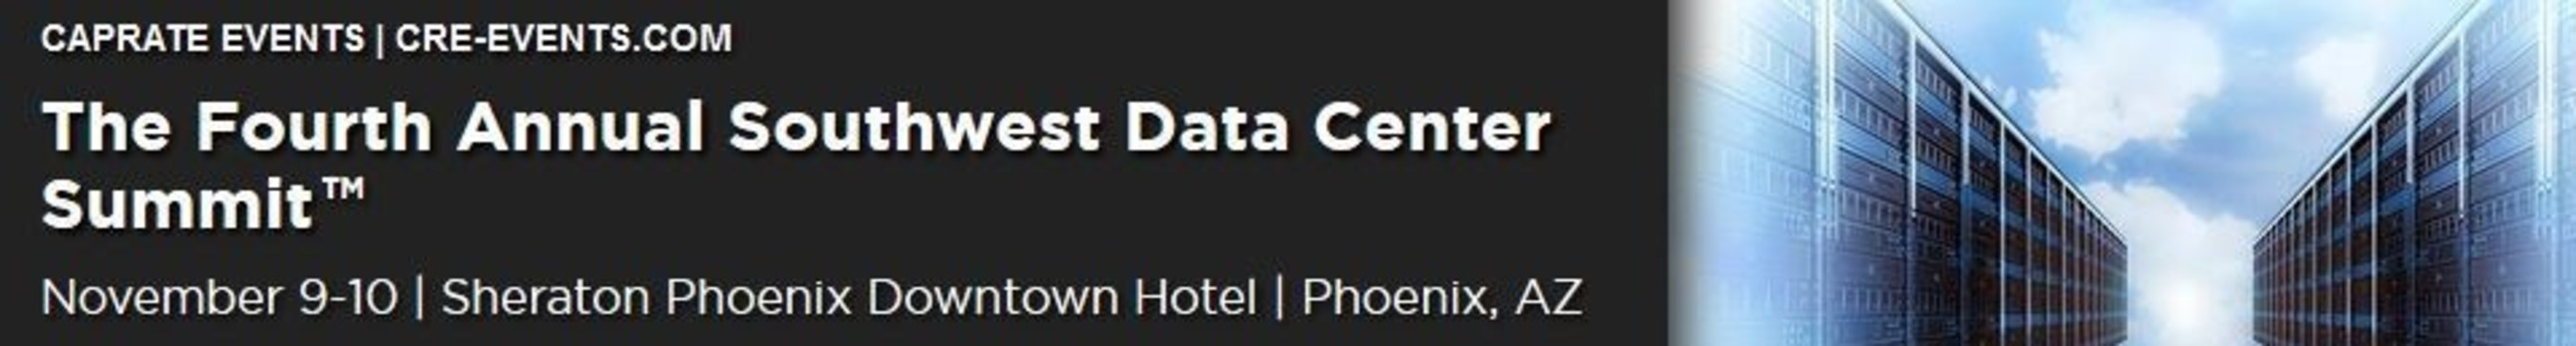 Attendance Builds for Southwest Data Center Summit; Announcing Opening Night Reception at IO Phoenix